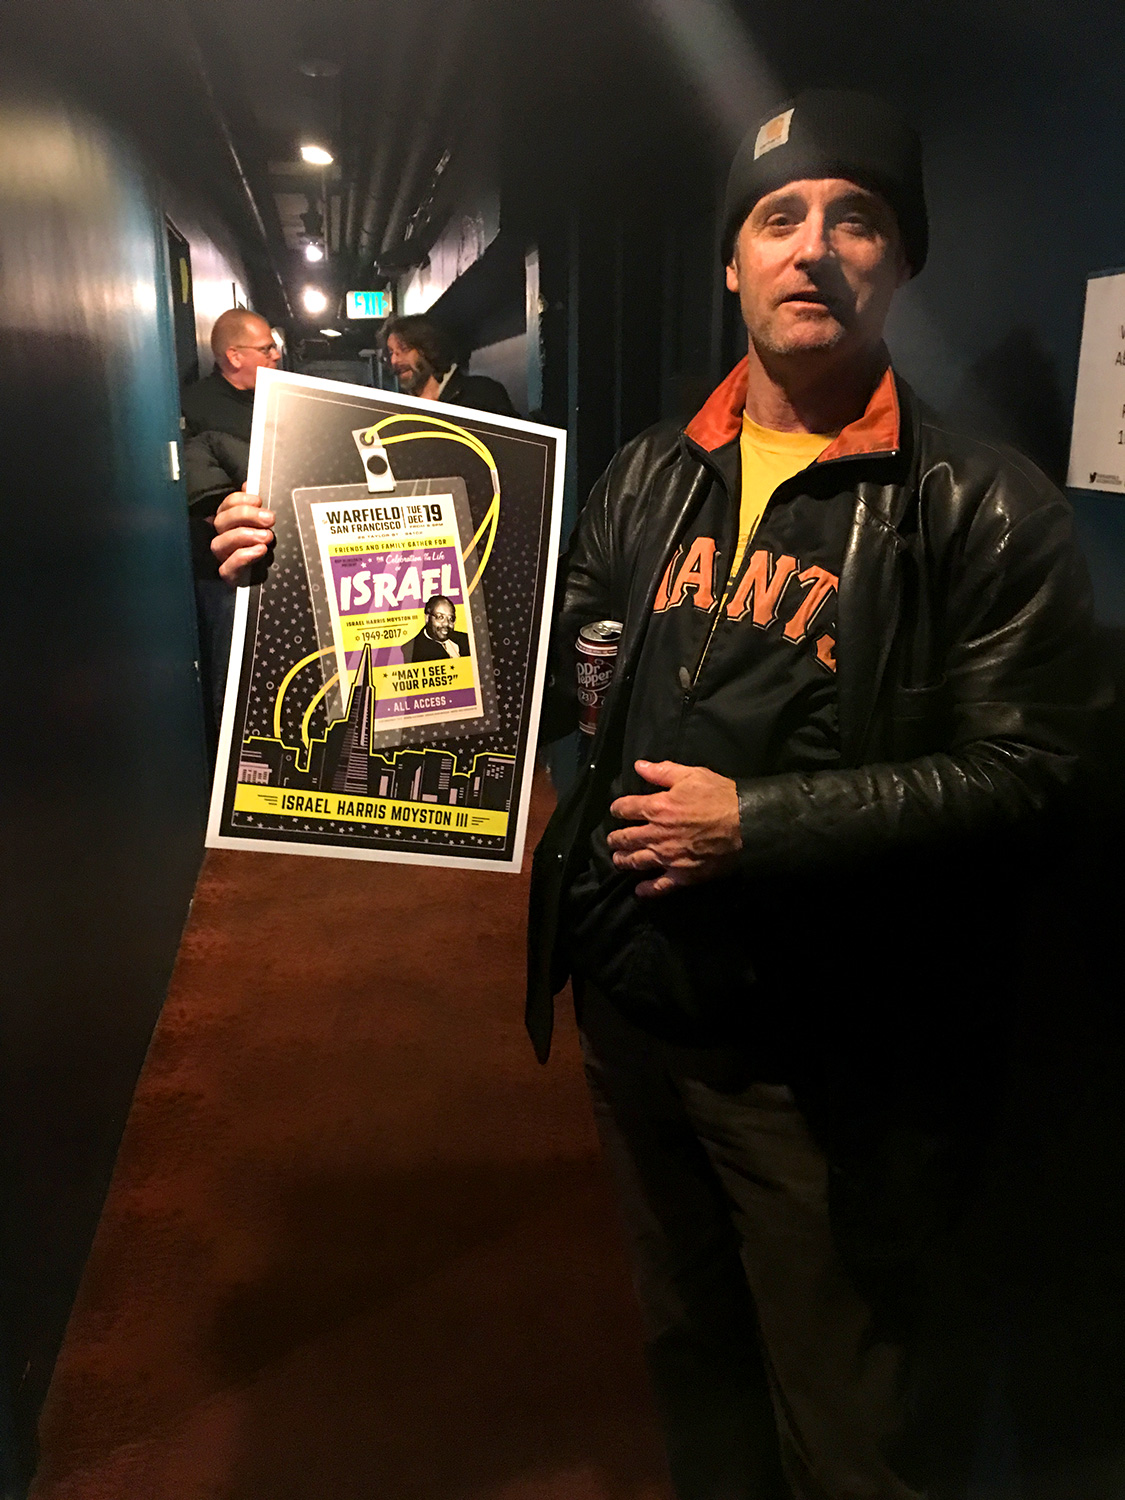 Friends backstage at The Warfield receiving concert poster / Design by Heidi Skinner